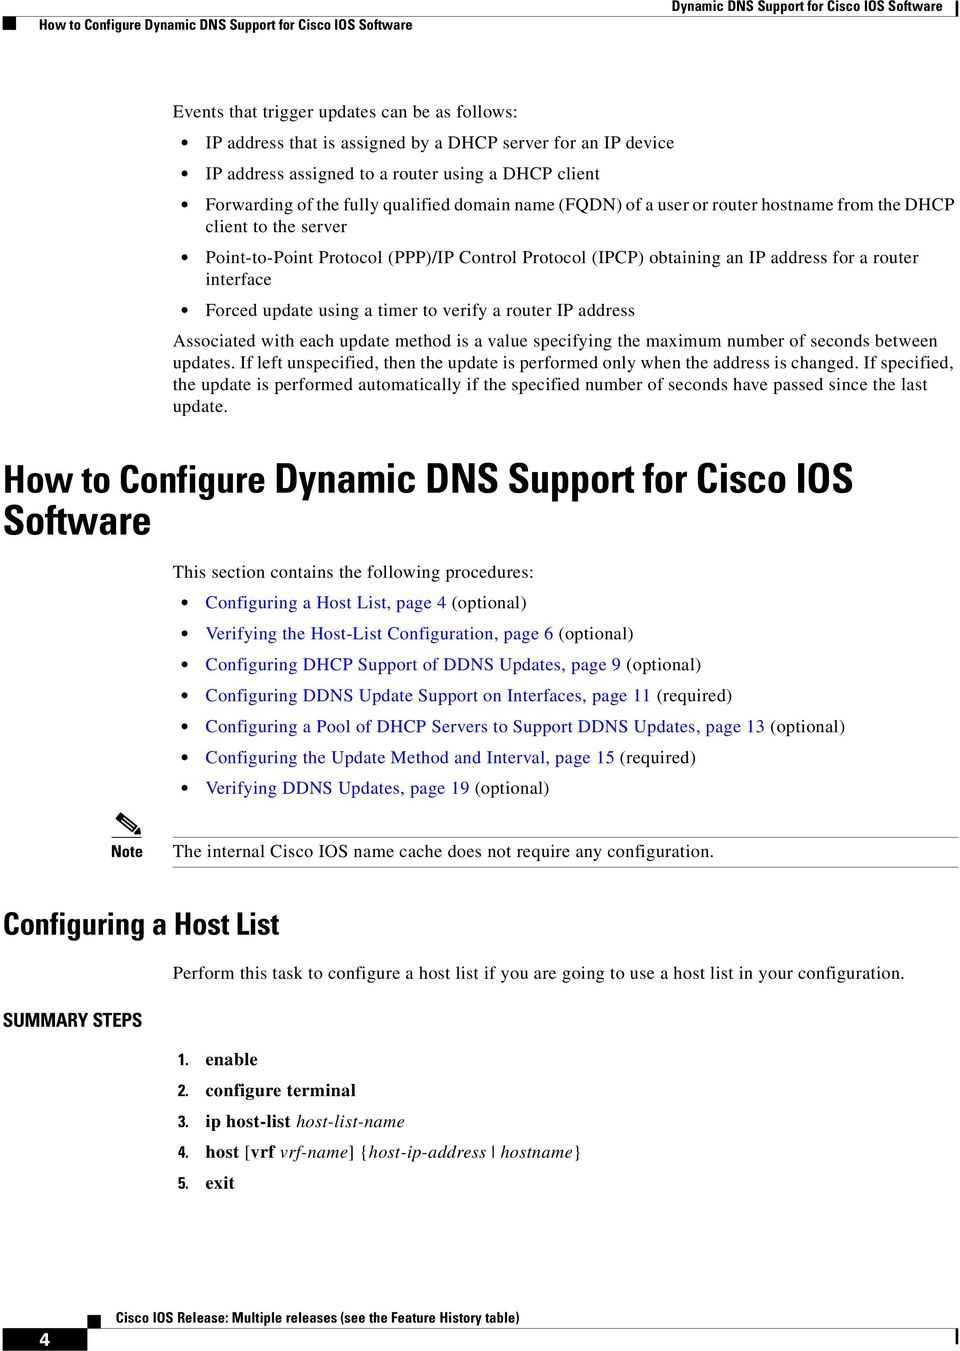 Dynamic DNS Support for Cisco IOS Software - PDF